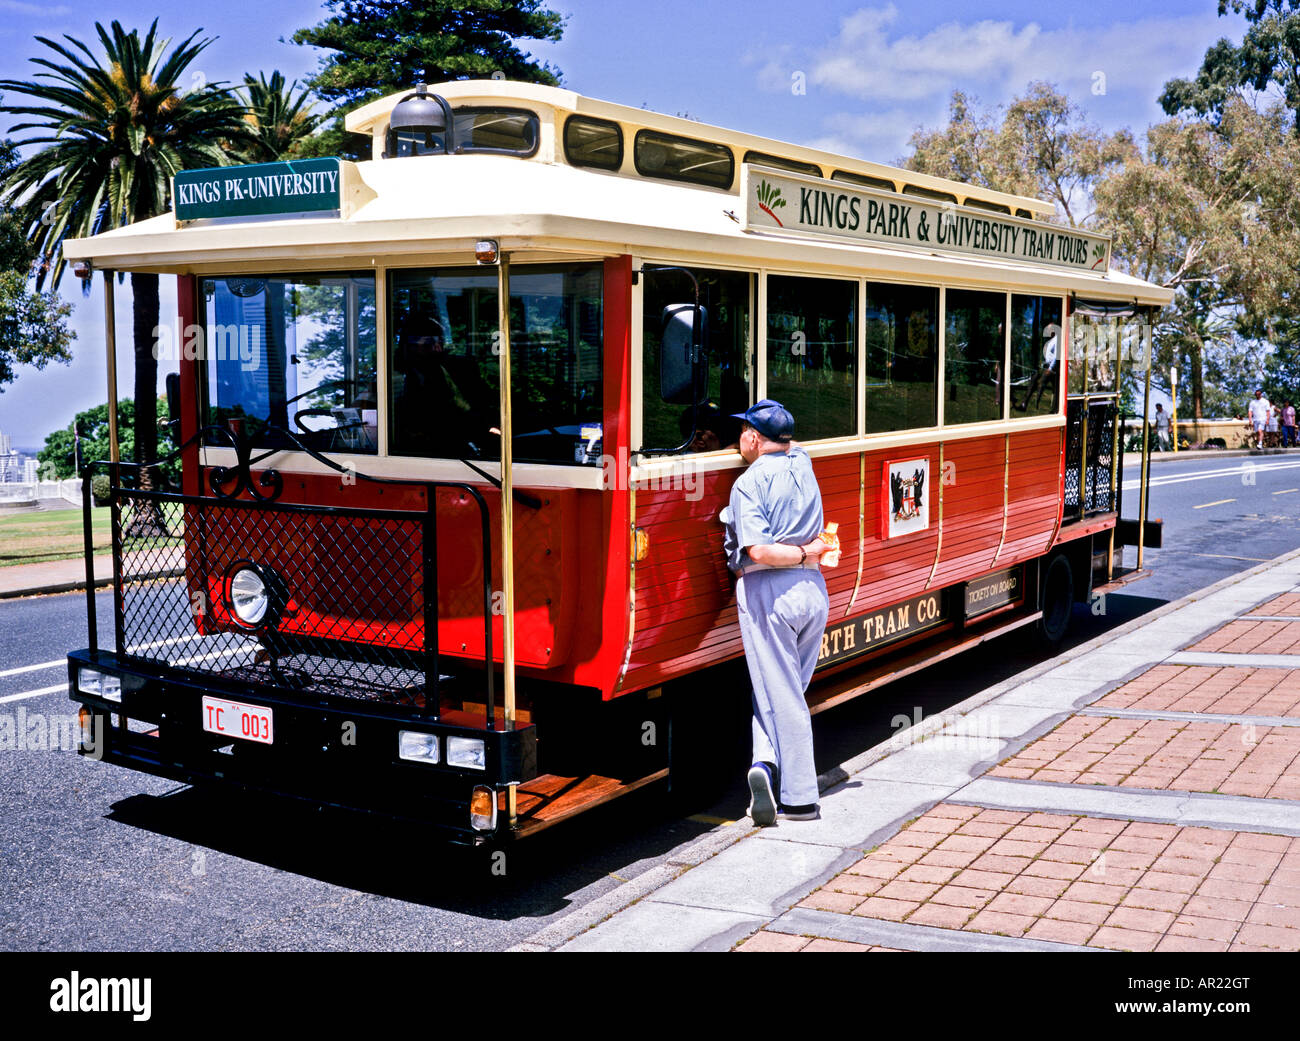 Replica early 19th century Perth tram awaiting tourists at Kings Park Perth Western Australia - Stock Image